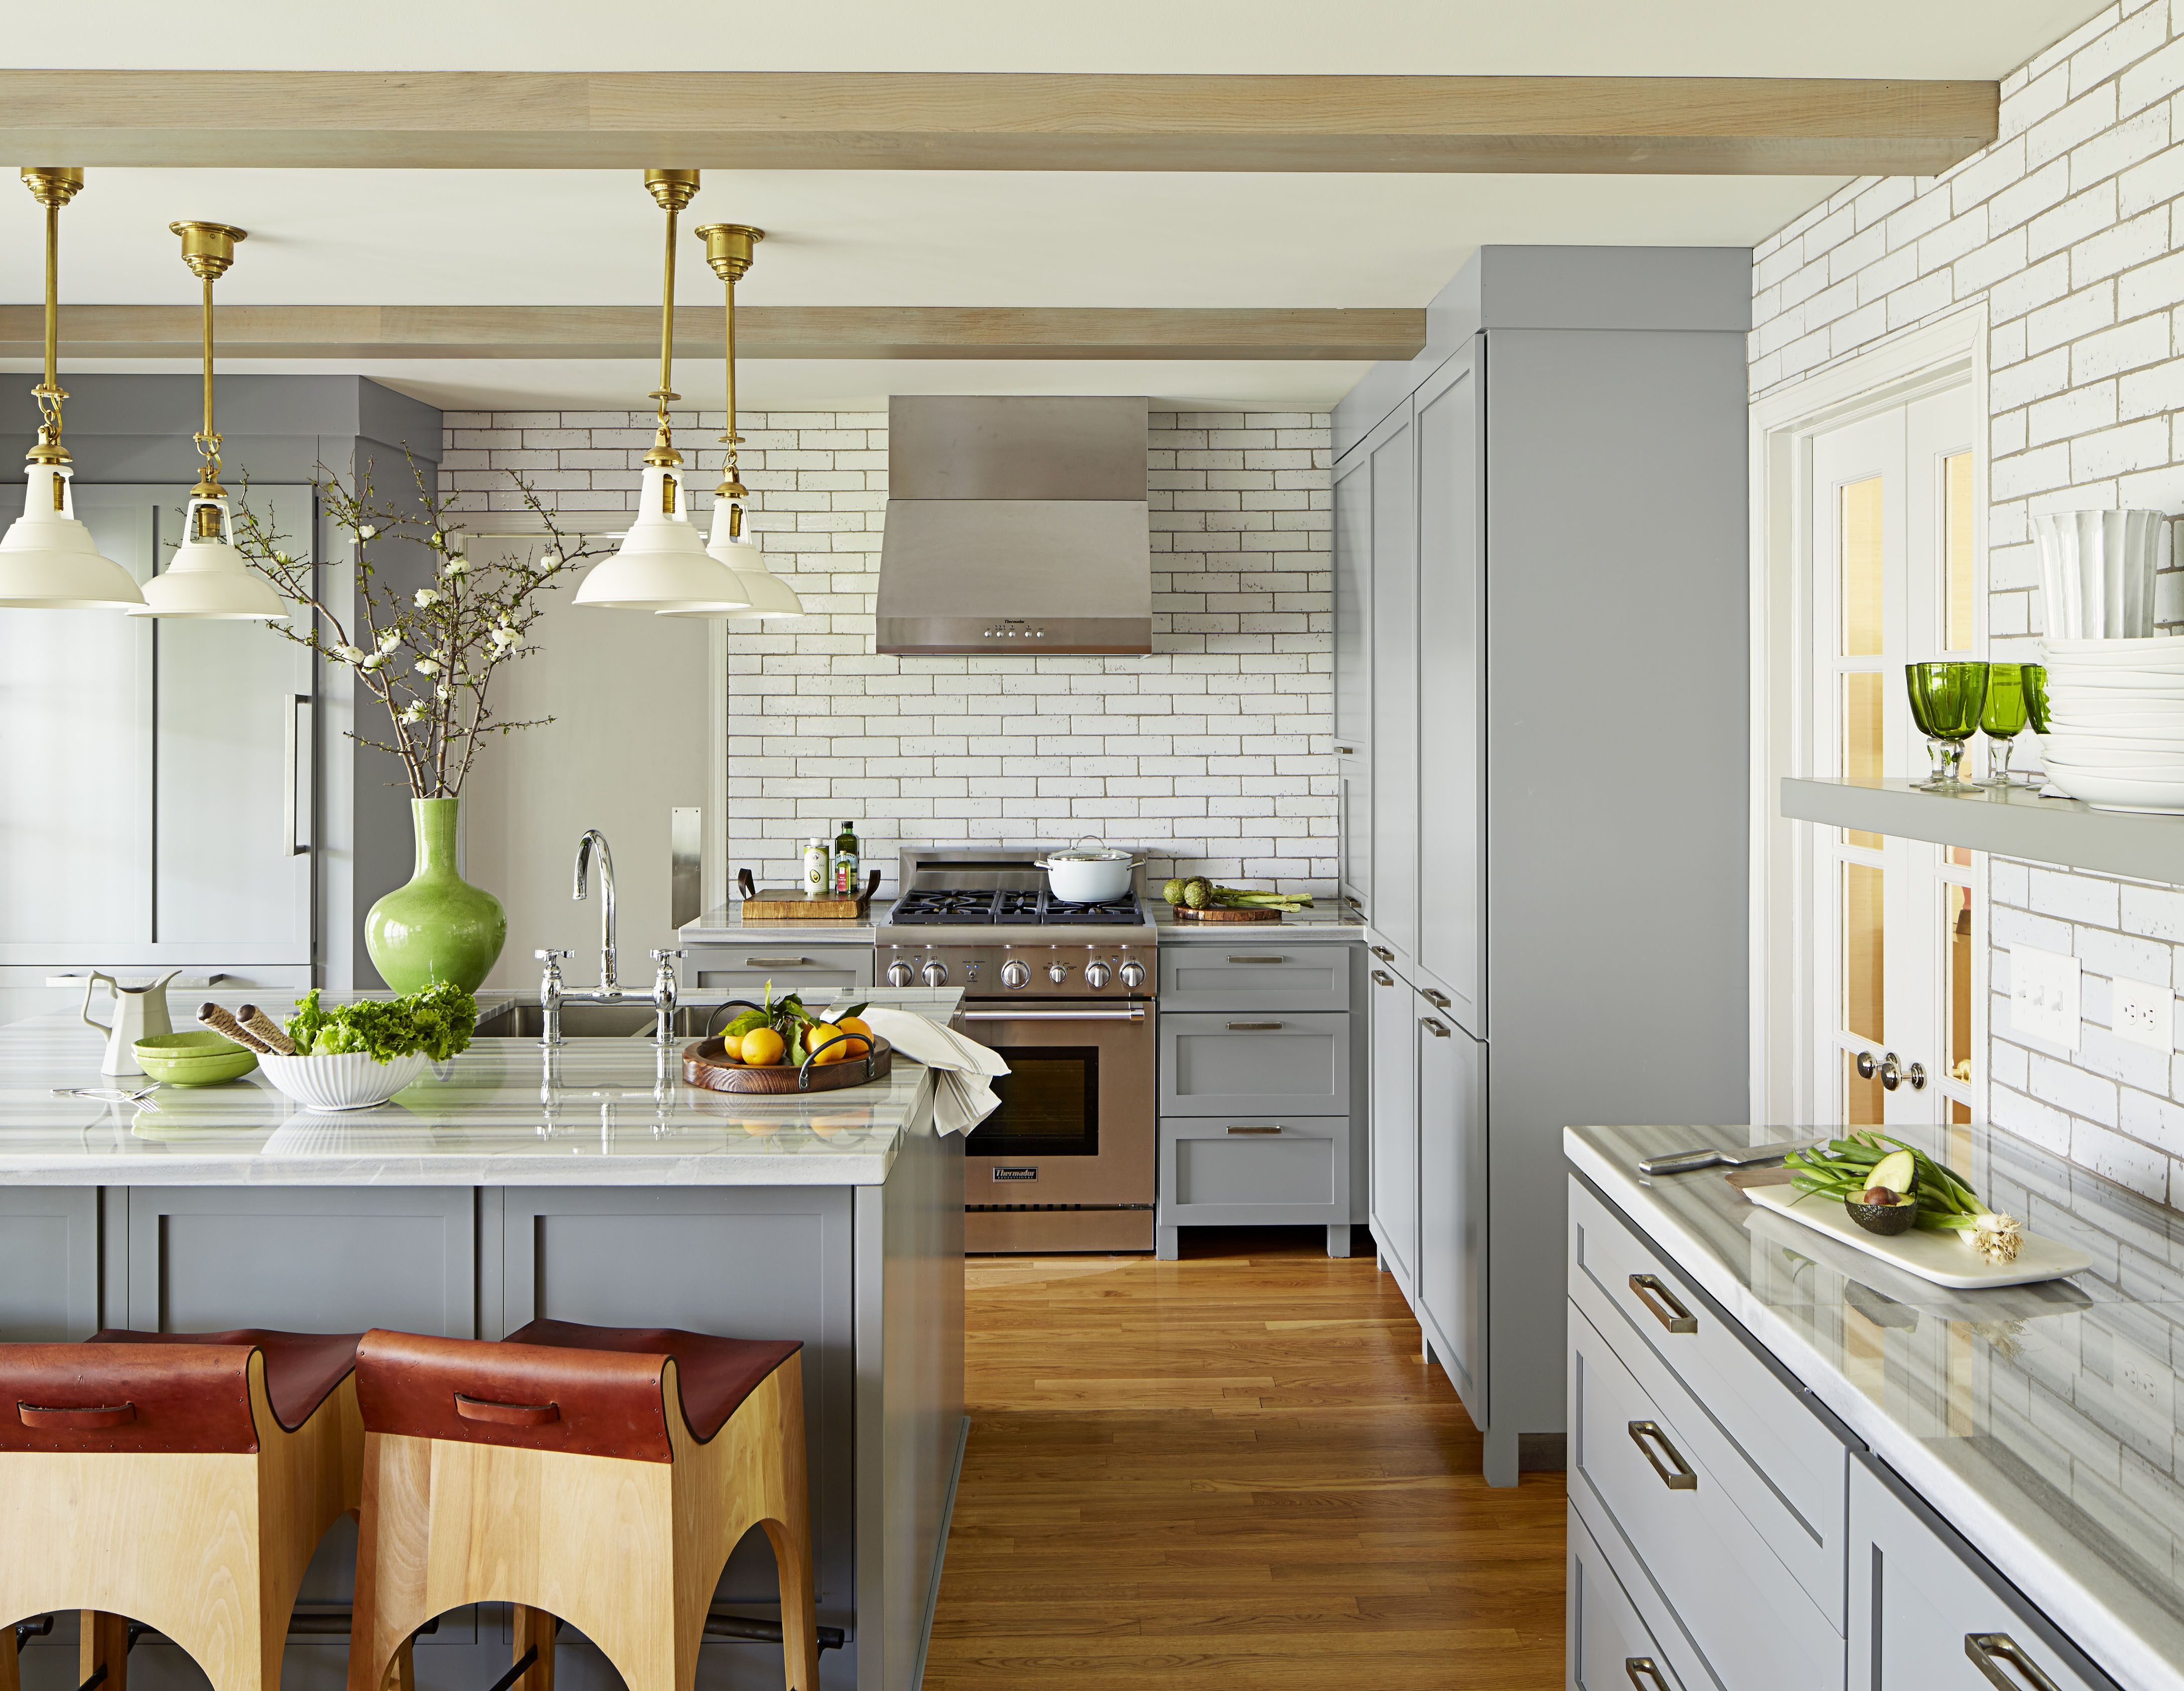 How Much Will Your Kitchen Reno Cost?